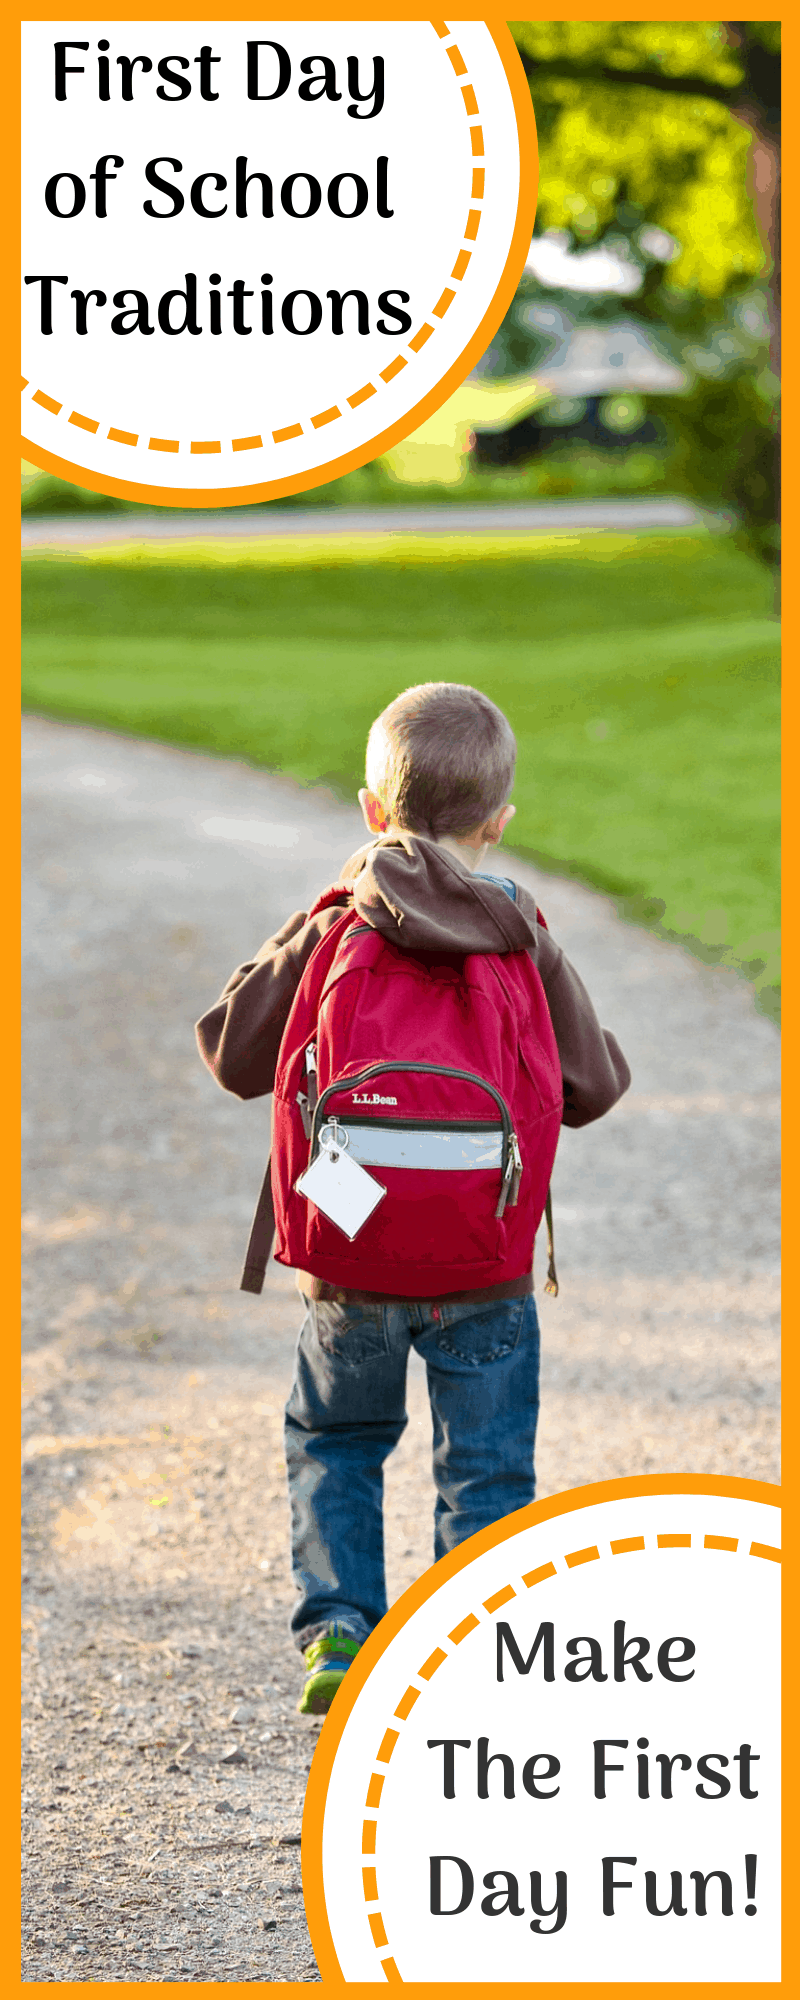 7 Fun First Day of School Traditions